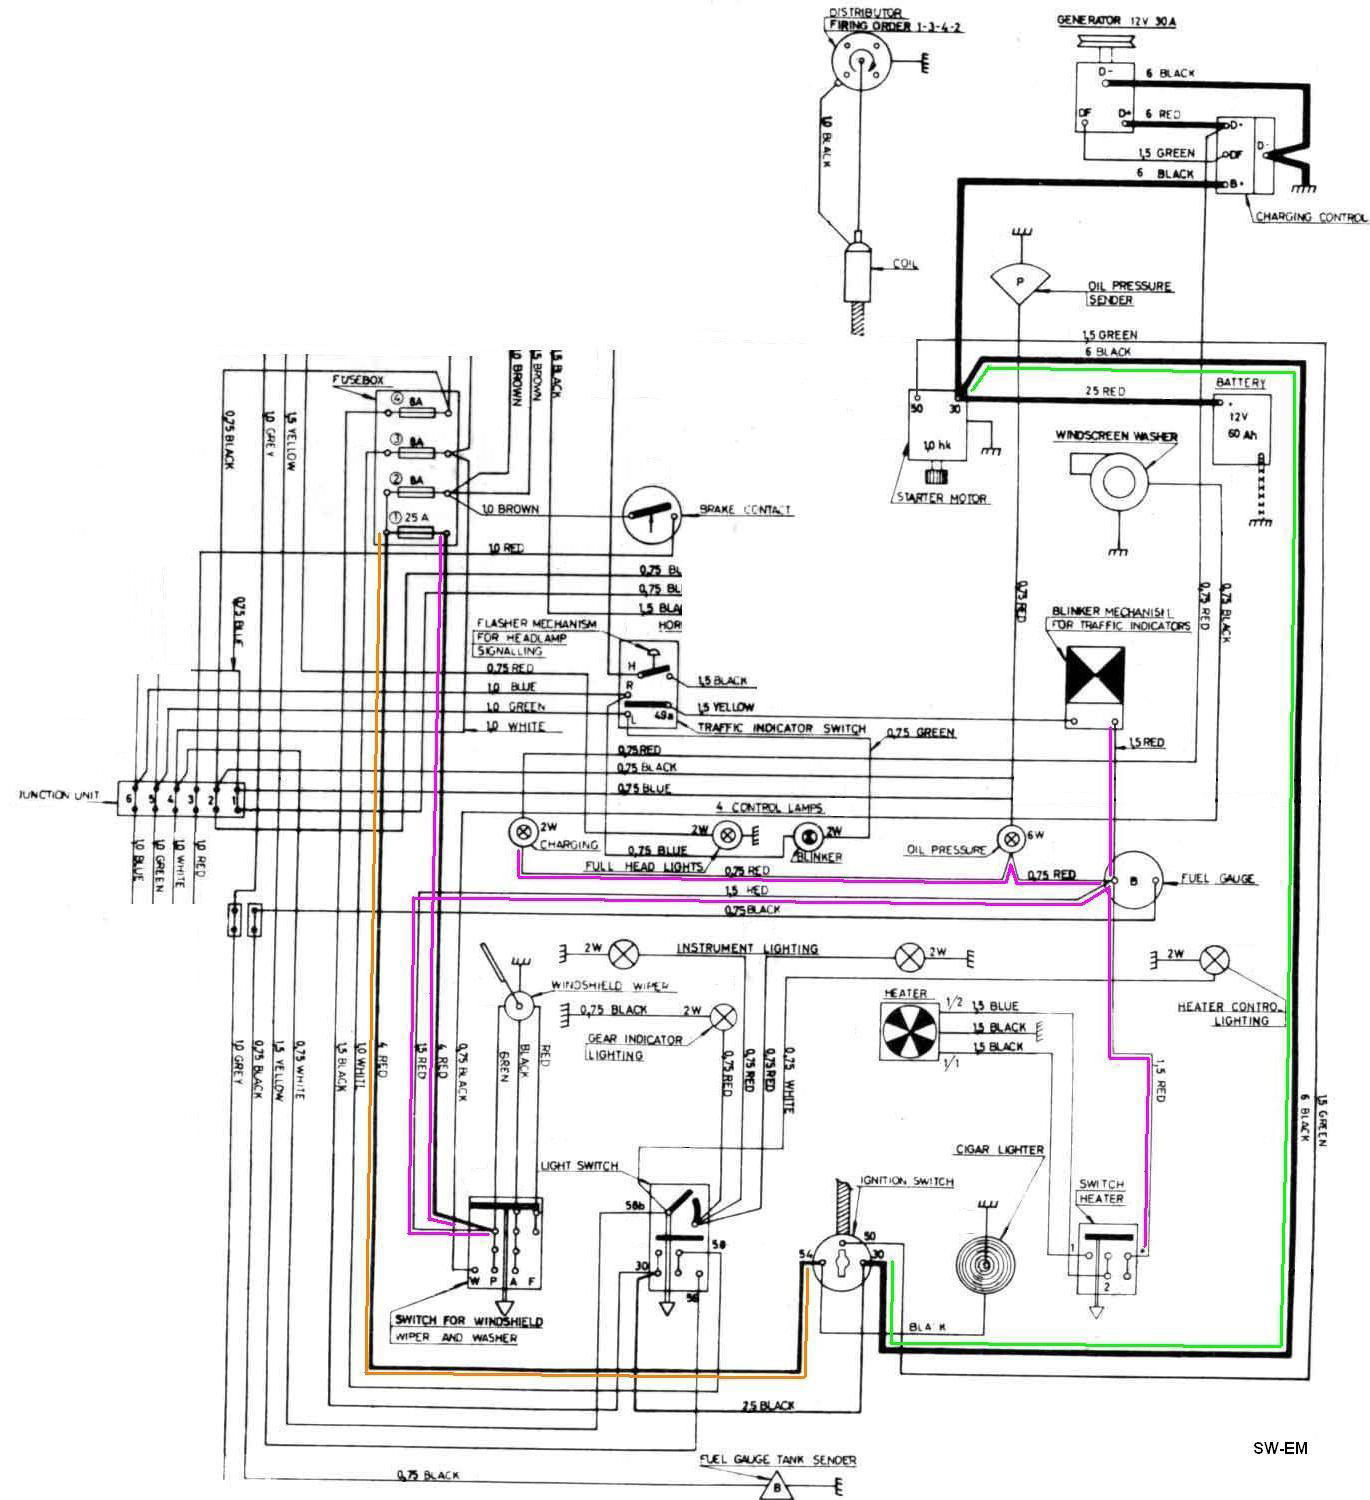 IGN SW wiring diag 122 markup 1800 ignition wiring swedish vs british design volvo penta industrial engine wiring diagram at edmiracle.co